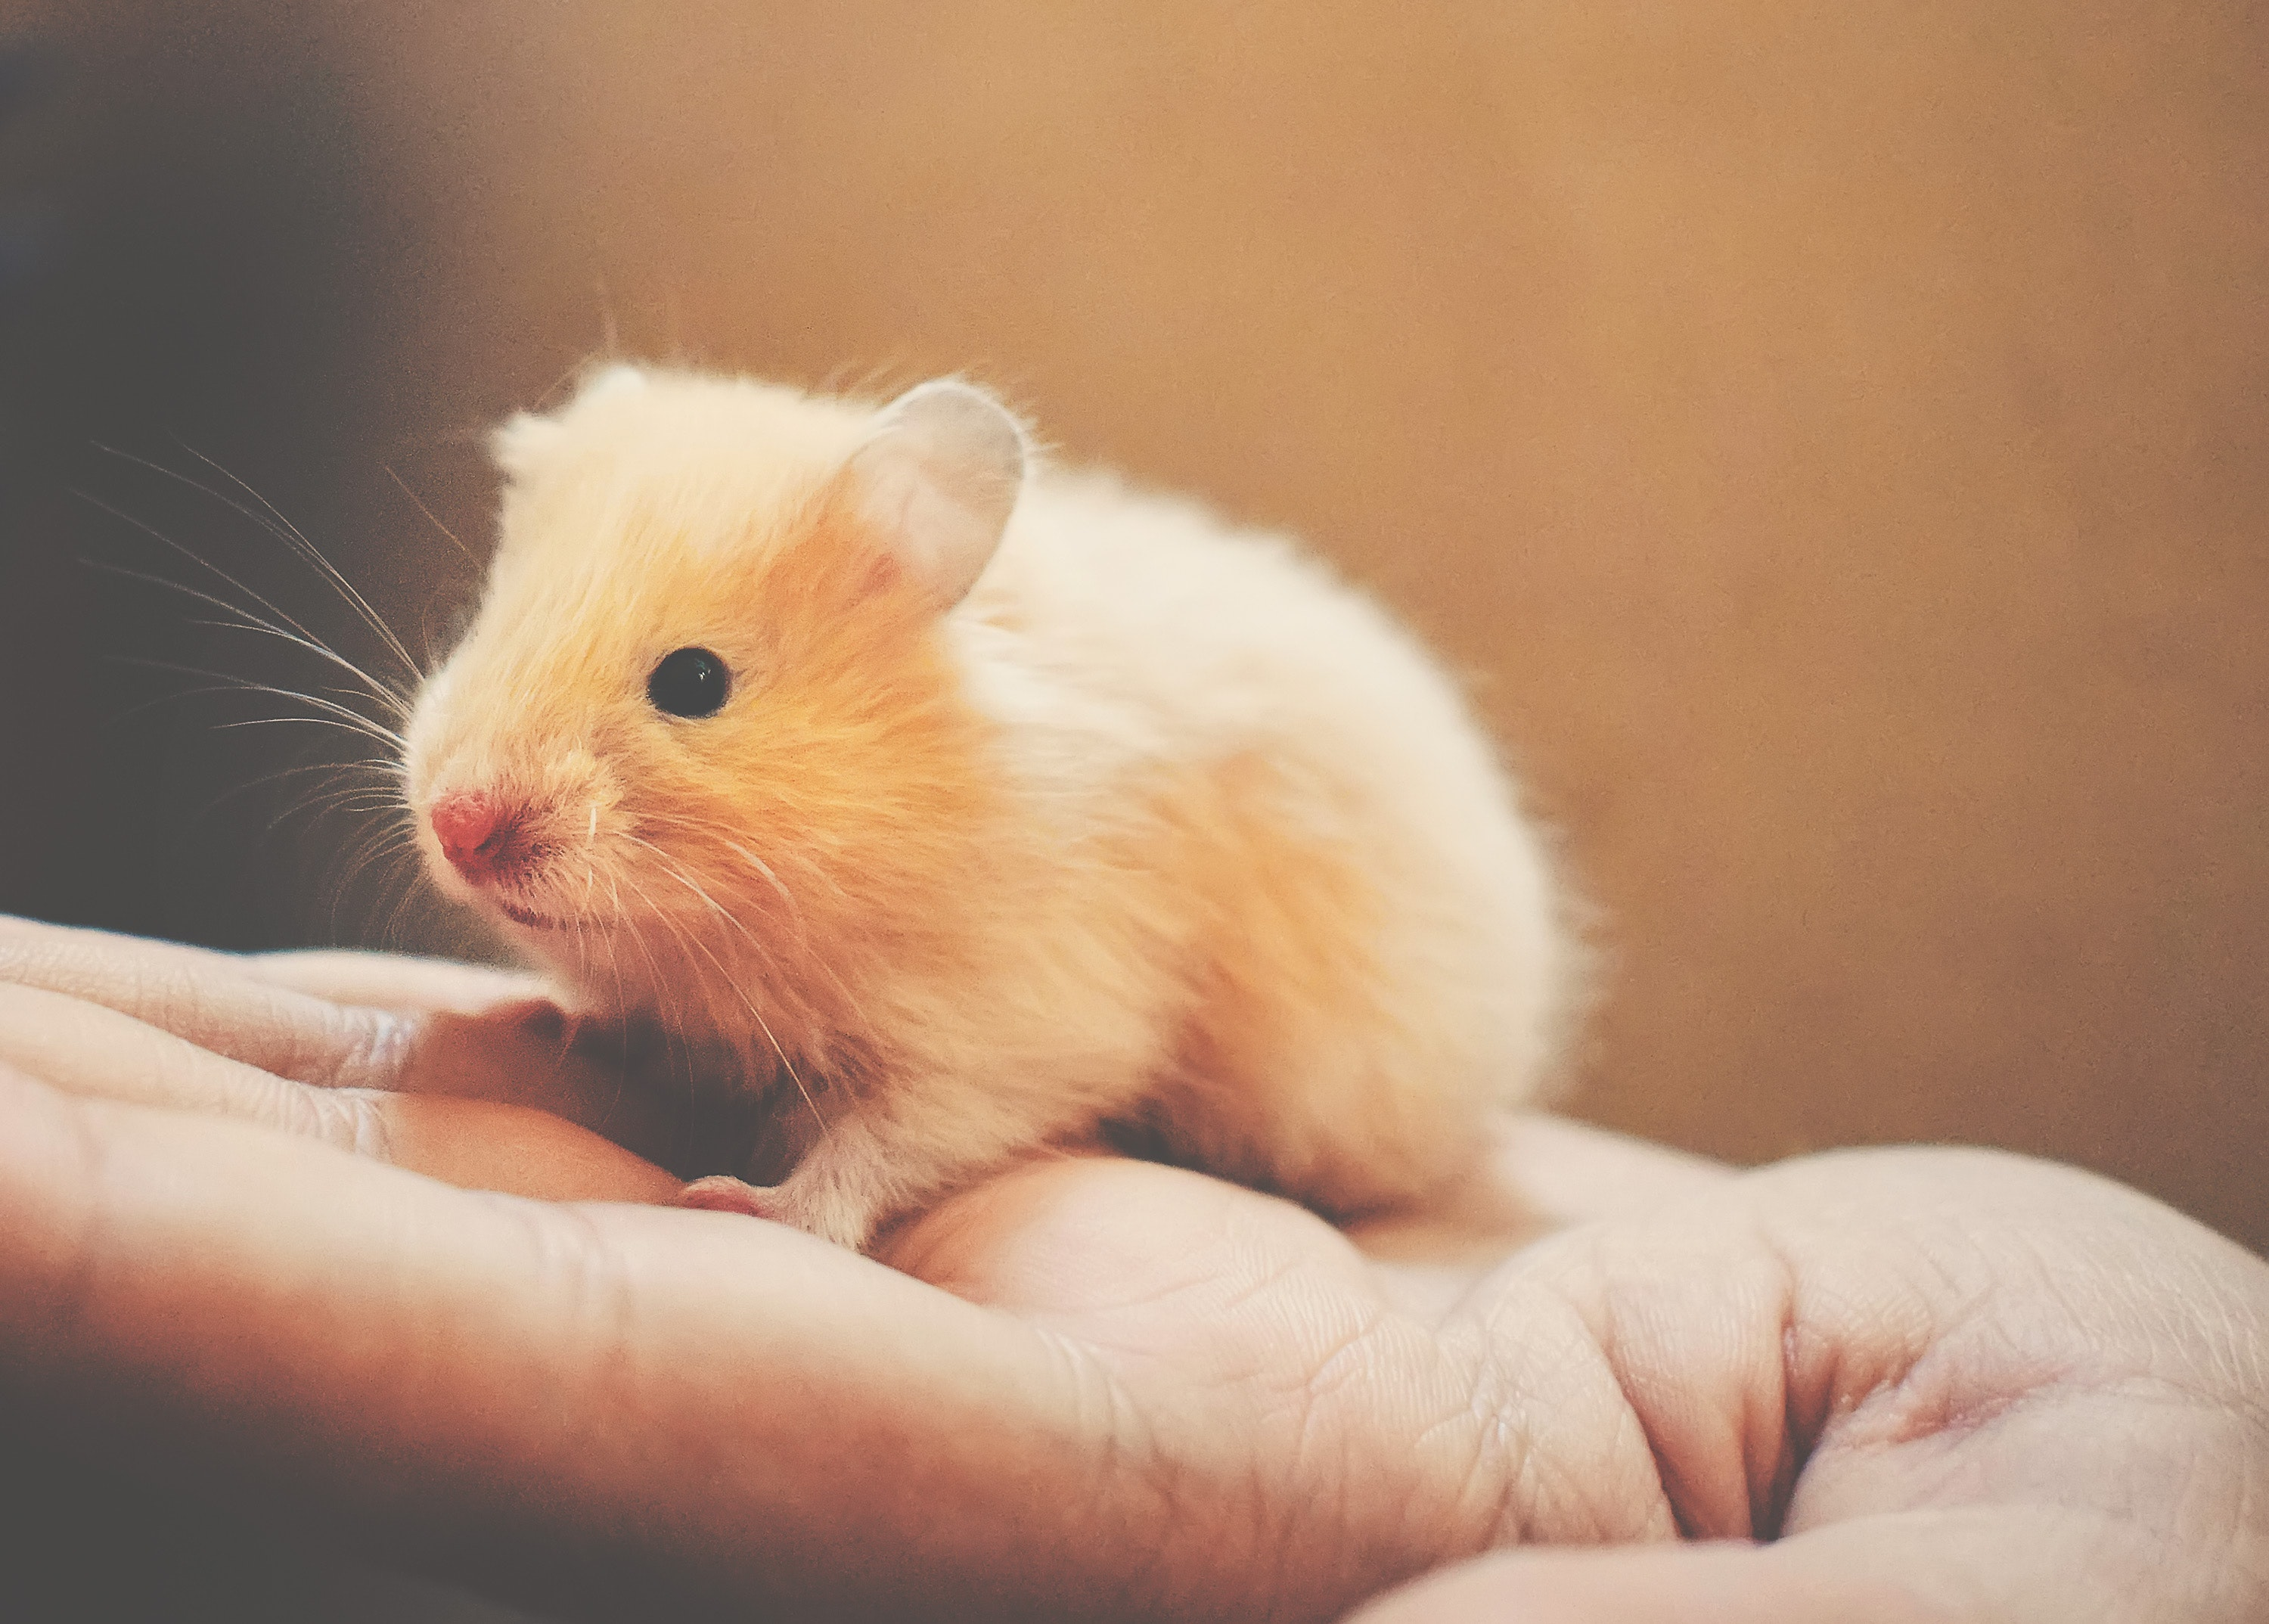 Shallow Focus Photography of White Rodent, Adorable, Little, Whisker, Rodent, HQ Photo